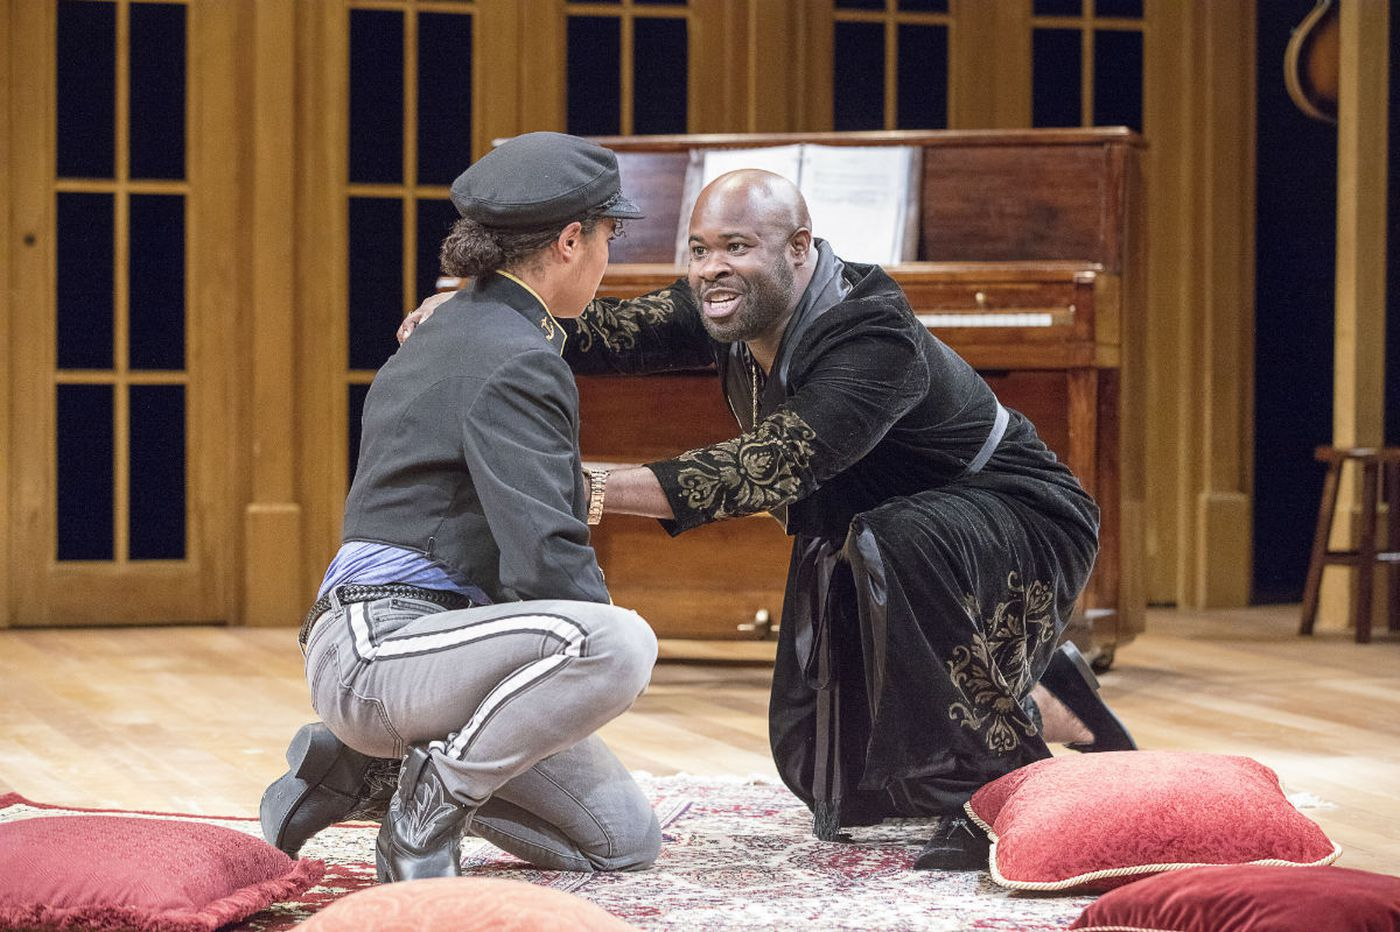 Pennsylvania Shakespeare Festival's 'Twelfth Night': A hilarious tragedy on human frailty